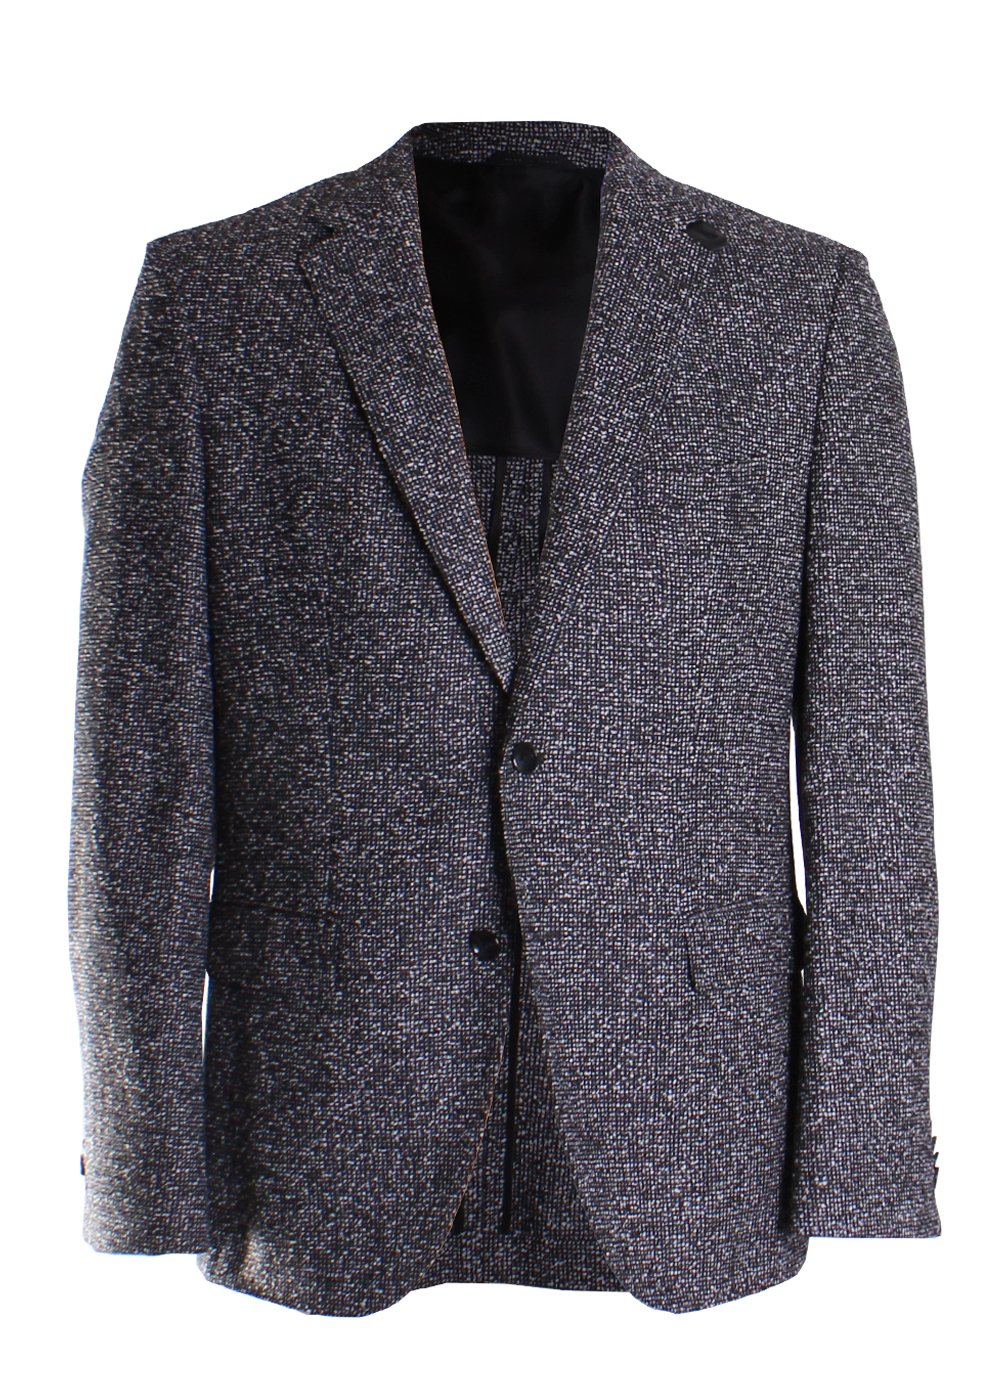 Hugo Boss Sportcoat 50375944 48L by Hugo Boss